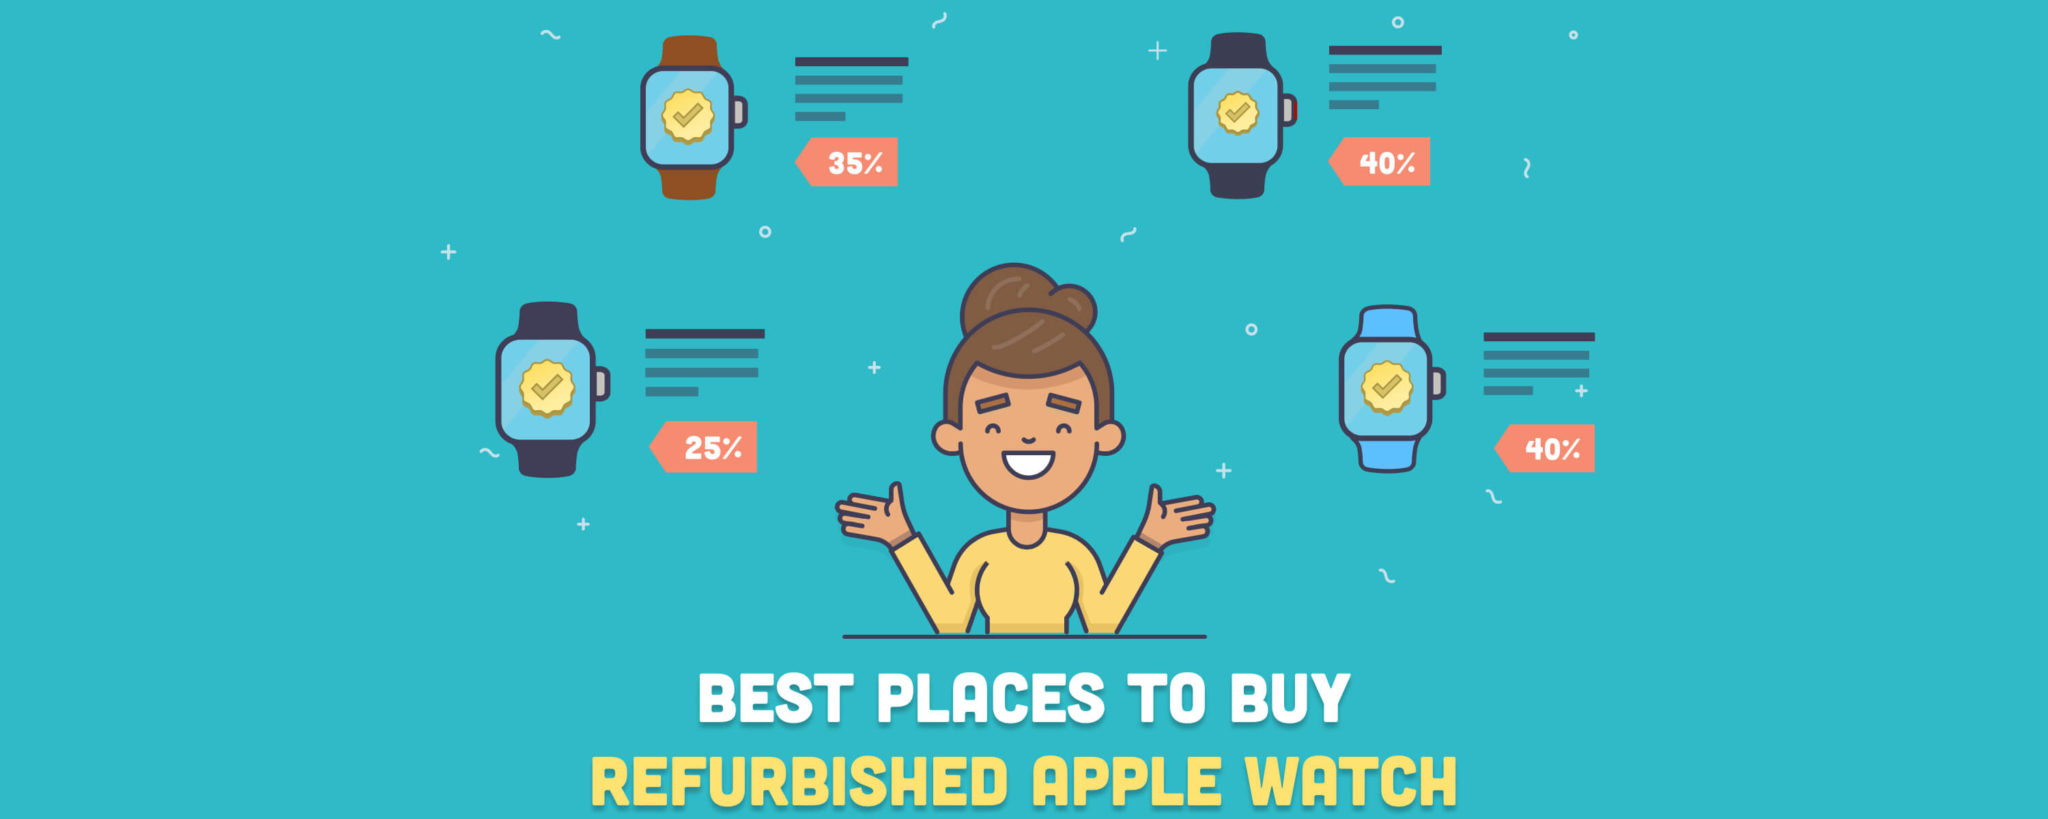 5 best places to buy a Refurbished Apple Watch